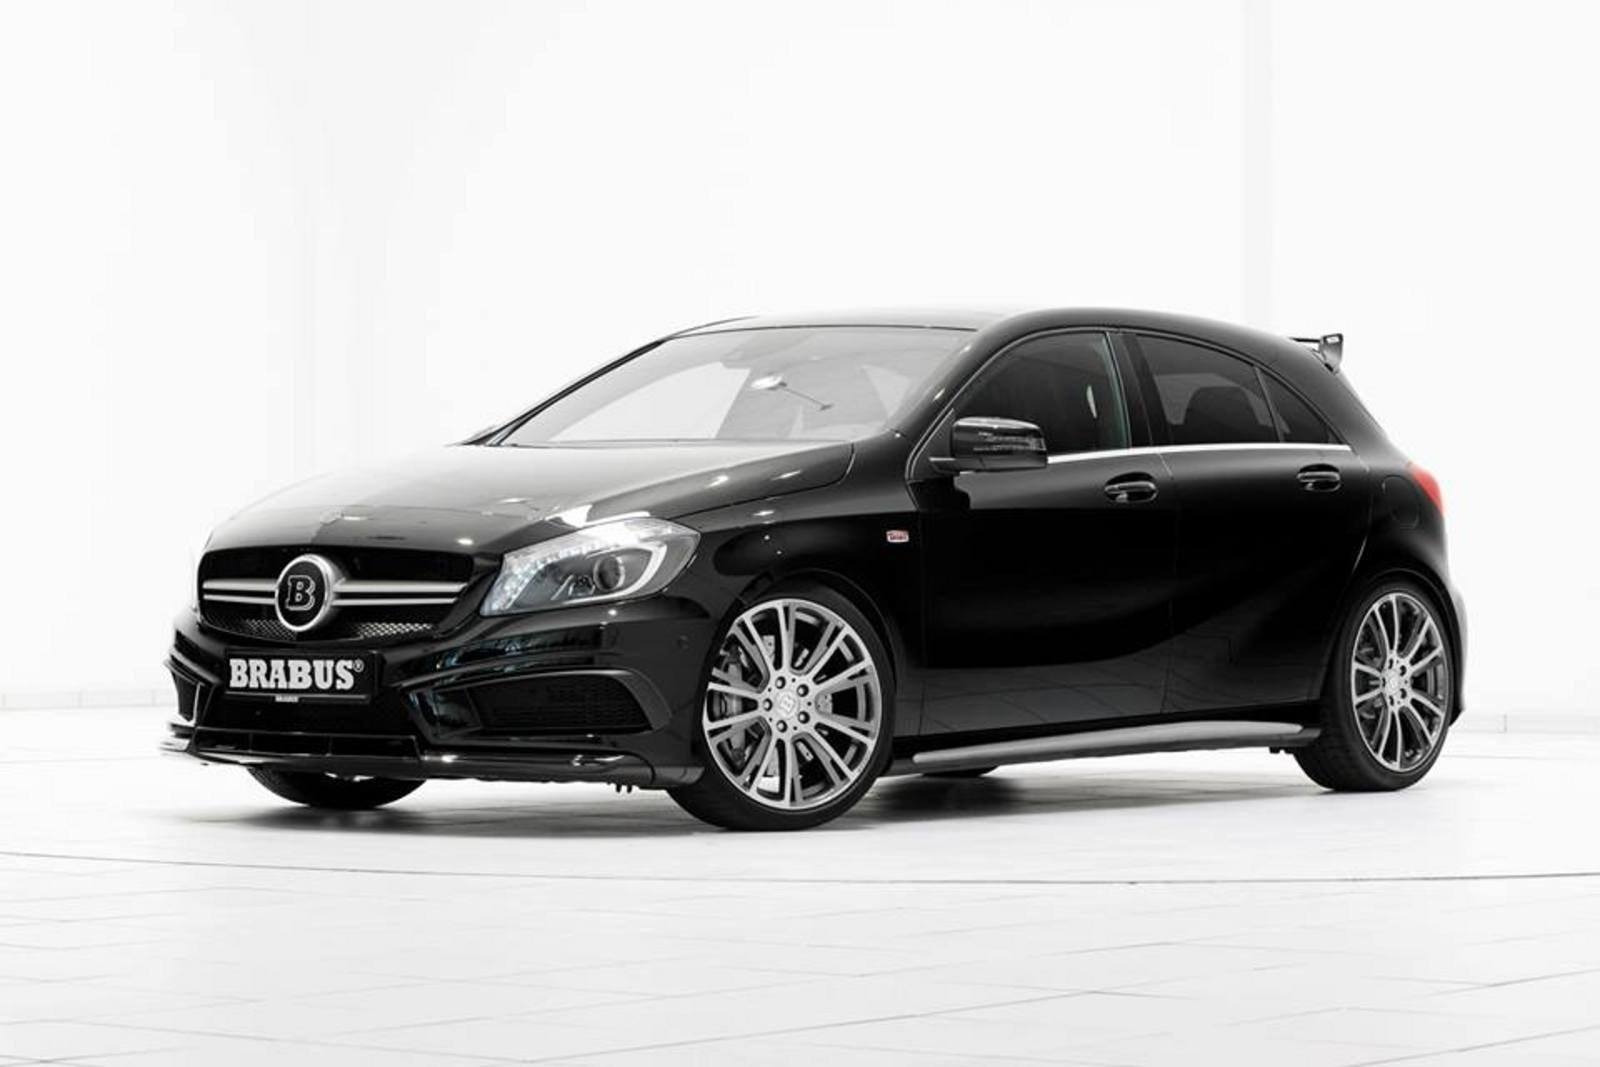 2014 mercedes benz a45 amg by brabus review top speed. Black Bedroom Furniture Sets. Home Design Ideas